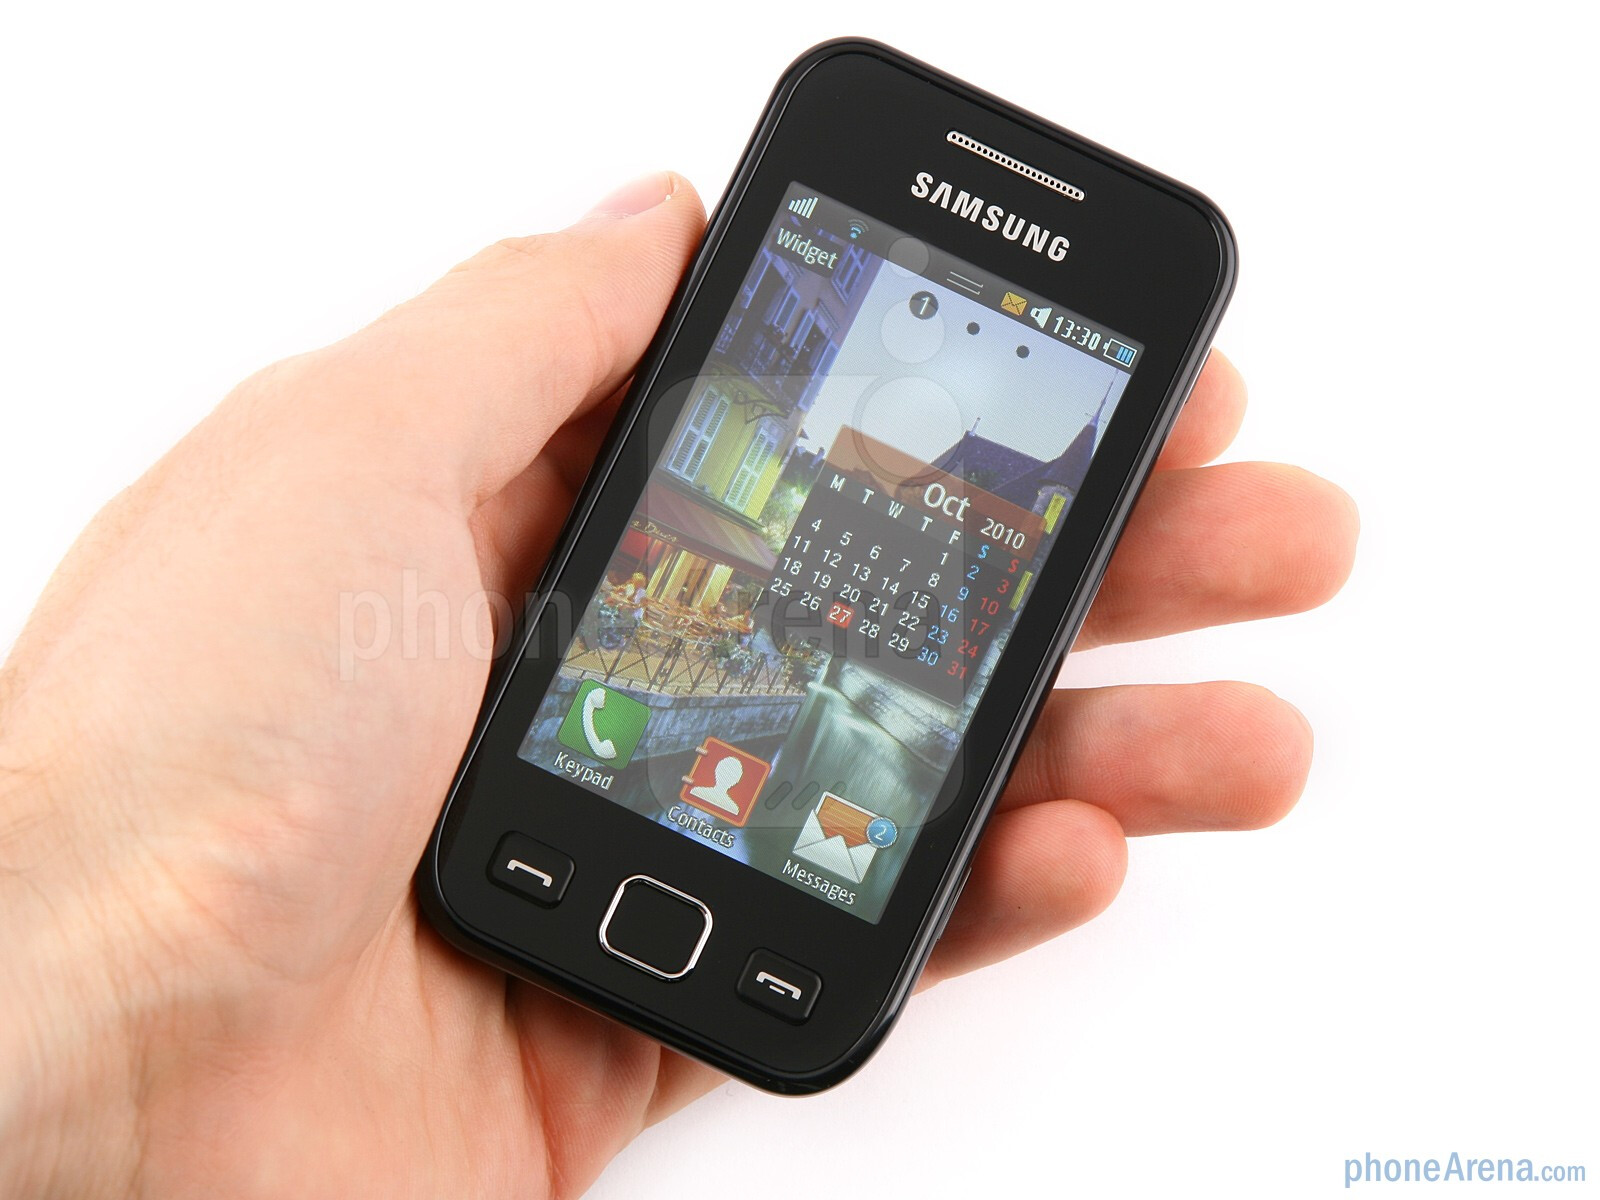 free mobile games for samsung wave 525 gt-s5253